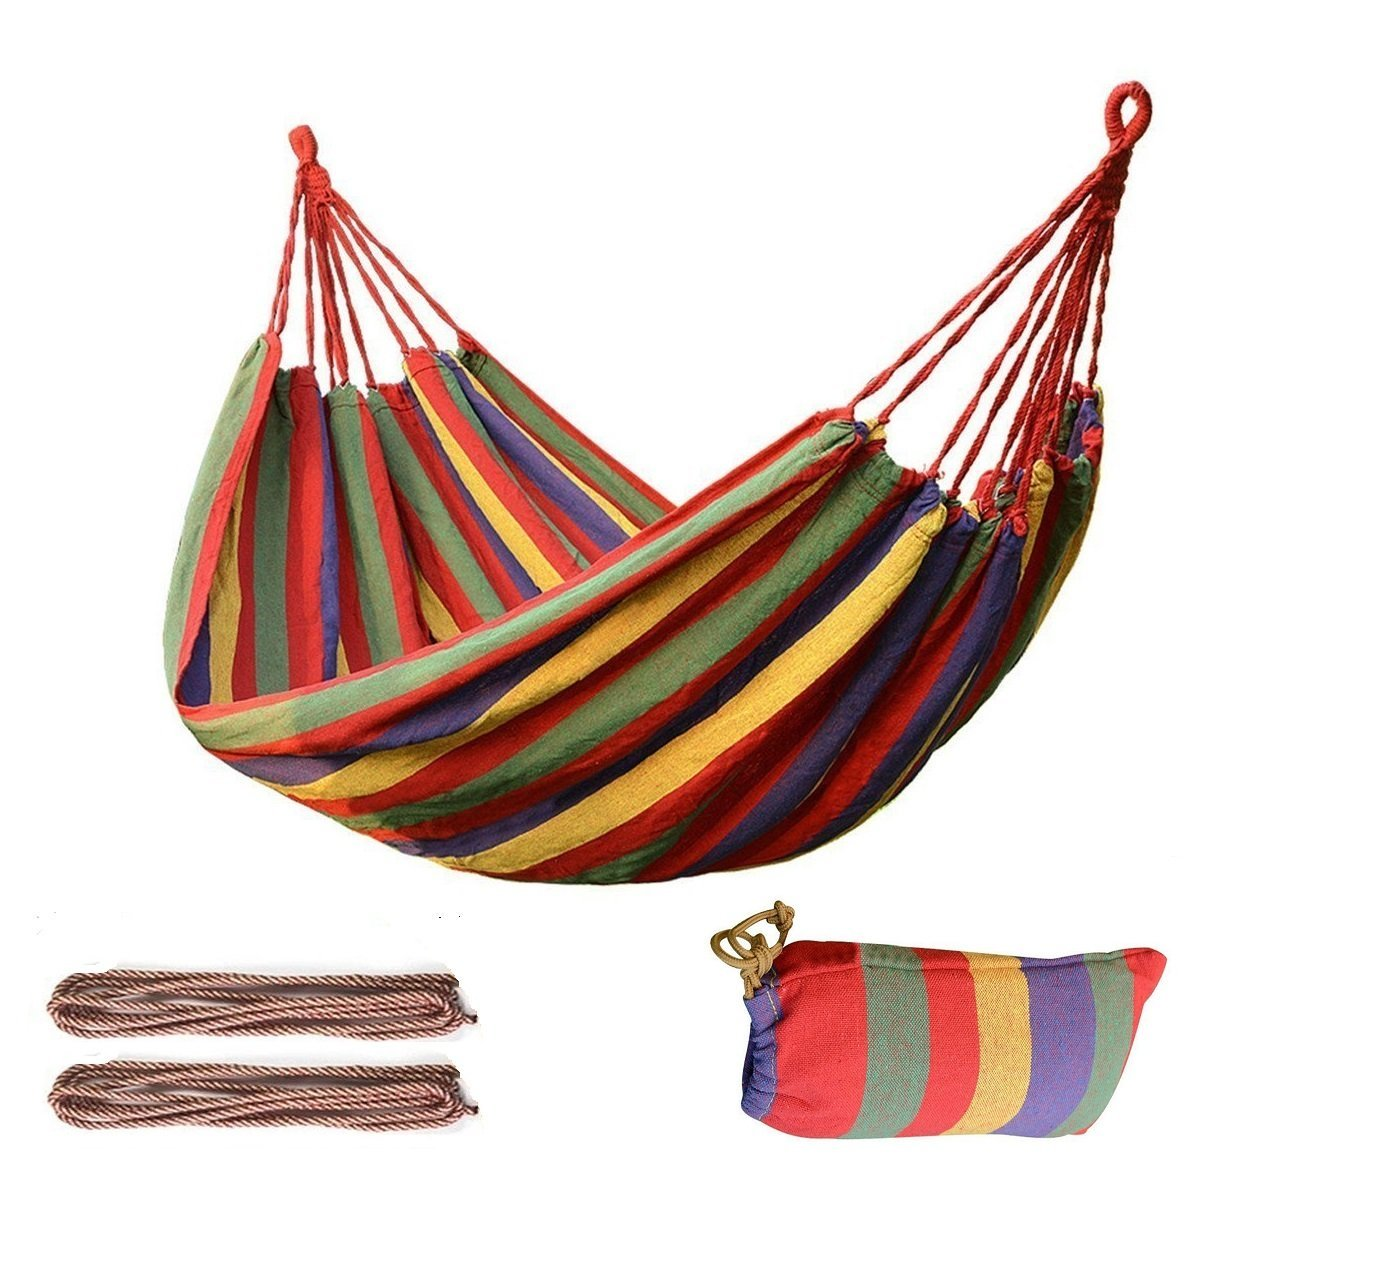 Outdoor Bed Multifunctional Hammock Cotton Fabric Travel